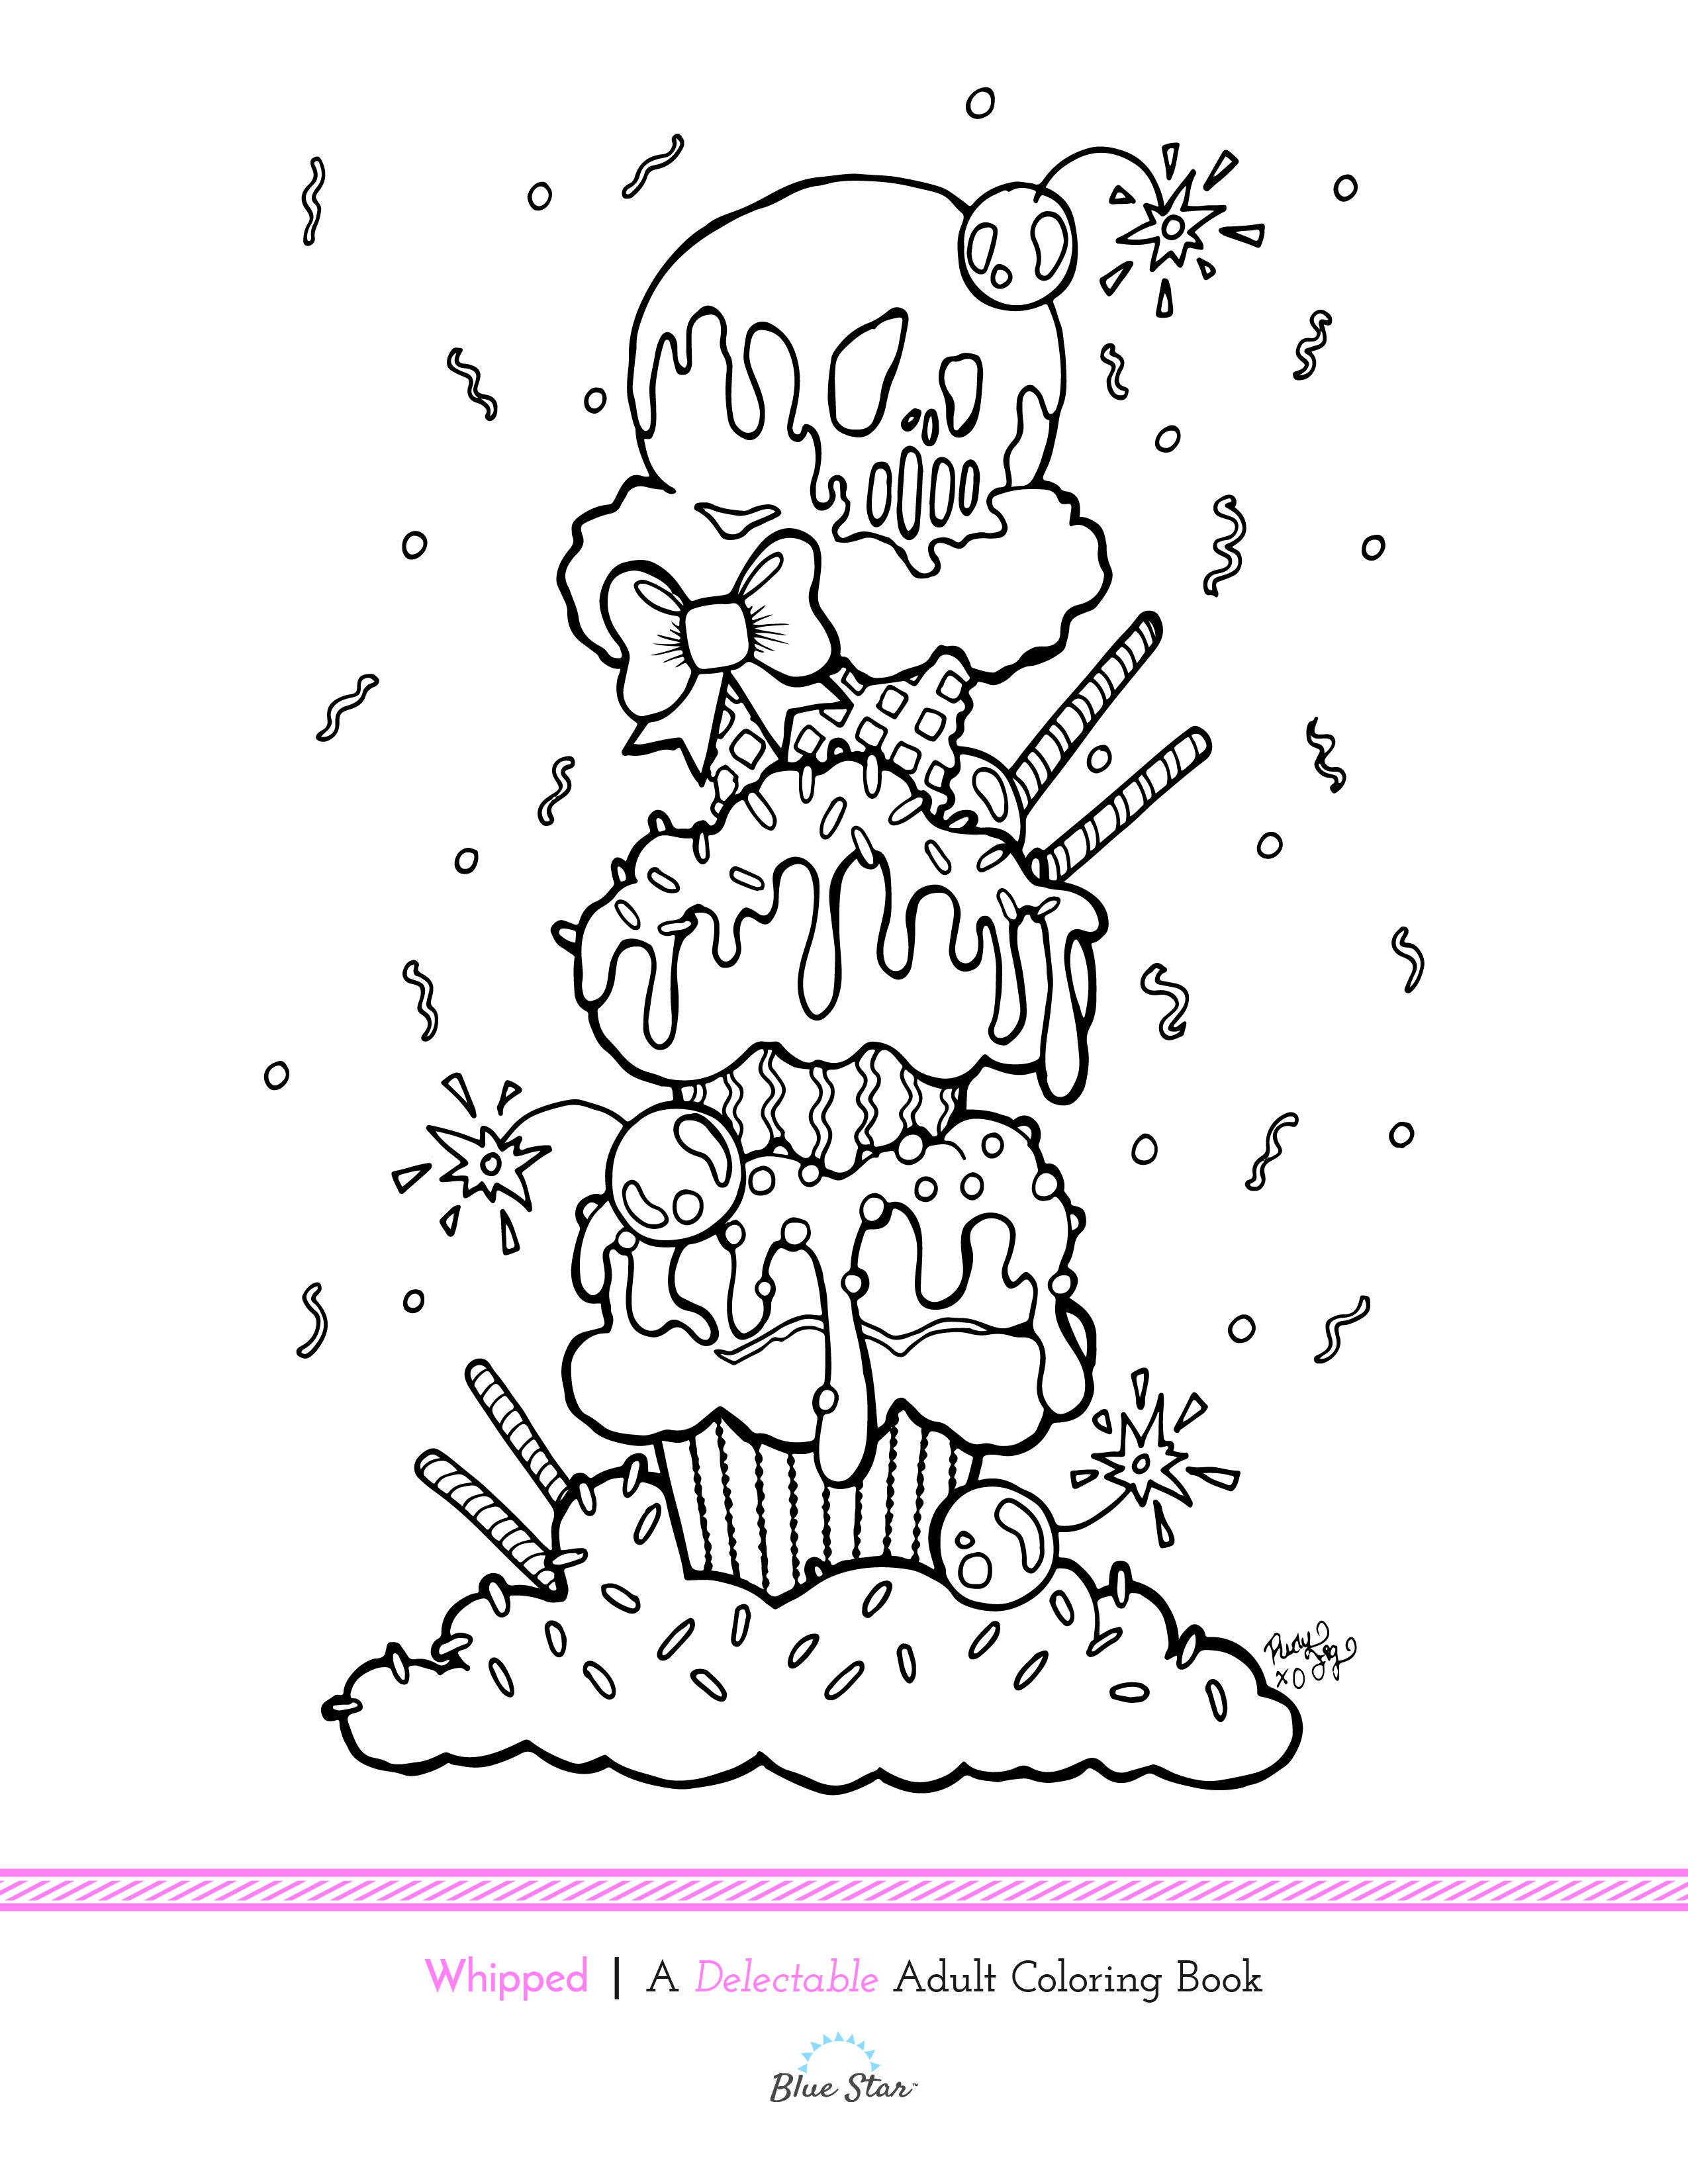 Ausmalbilder Vorlagen Geburtstag : Free Coloring Page From Rudy Fig S New Book Being Released On